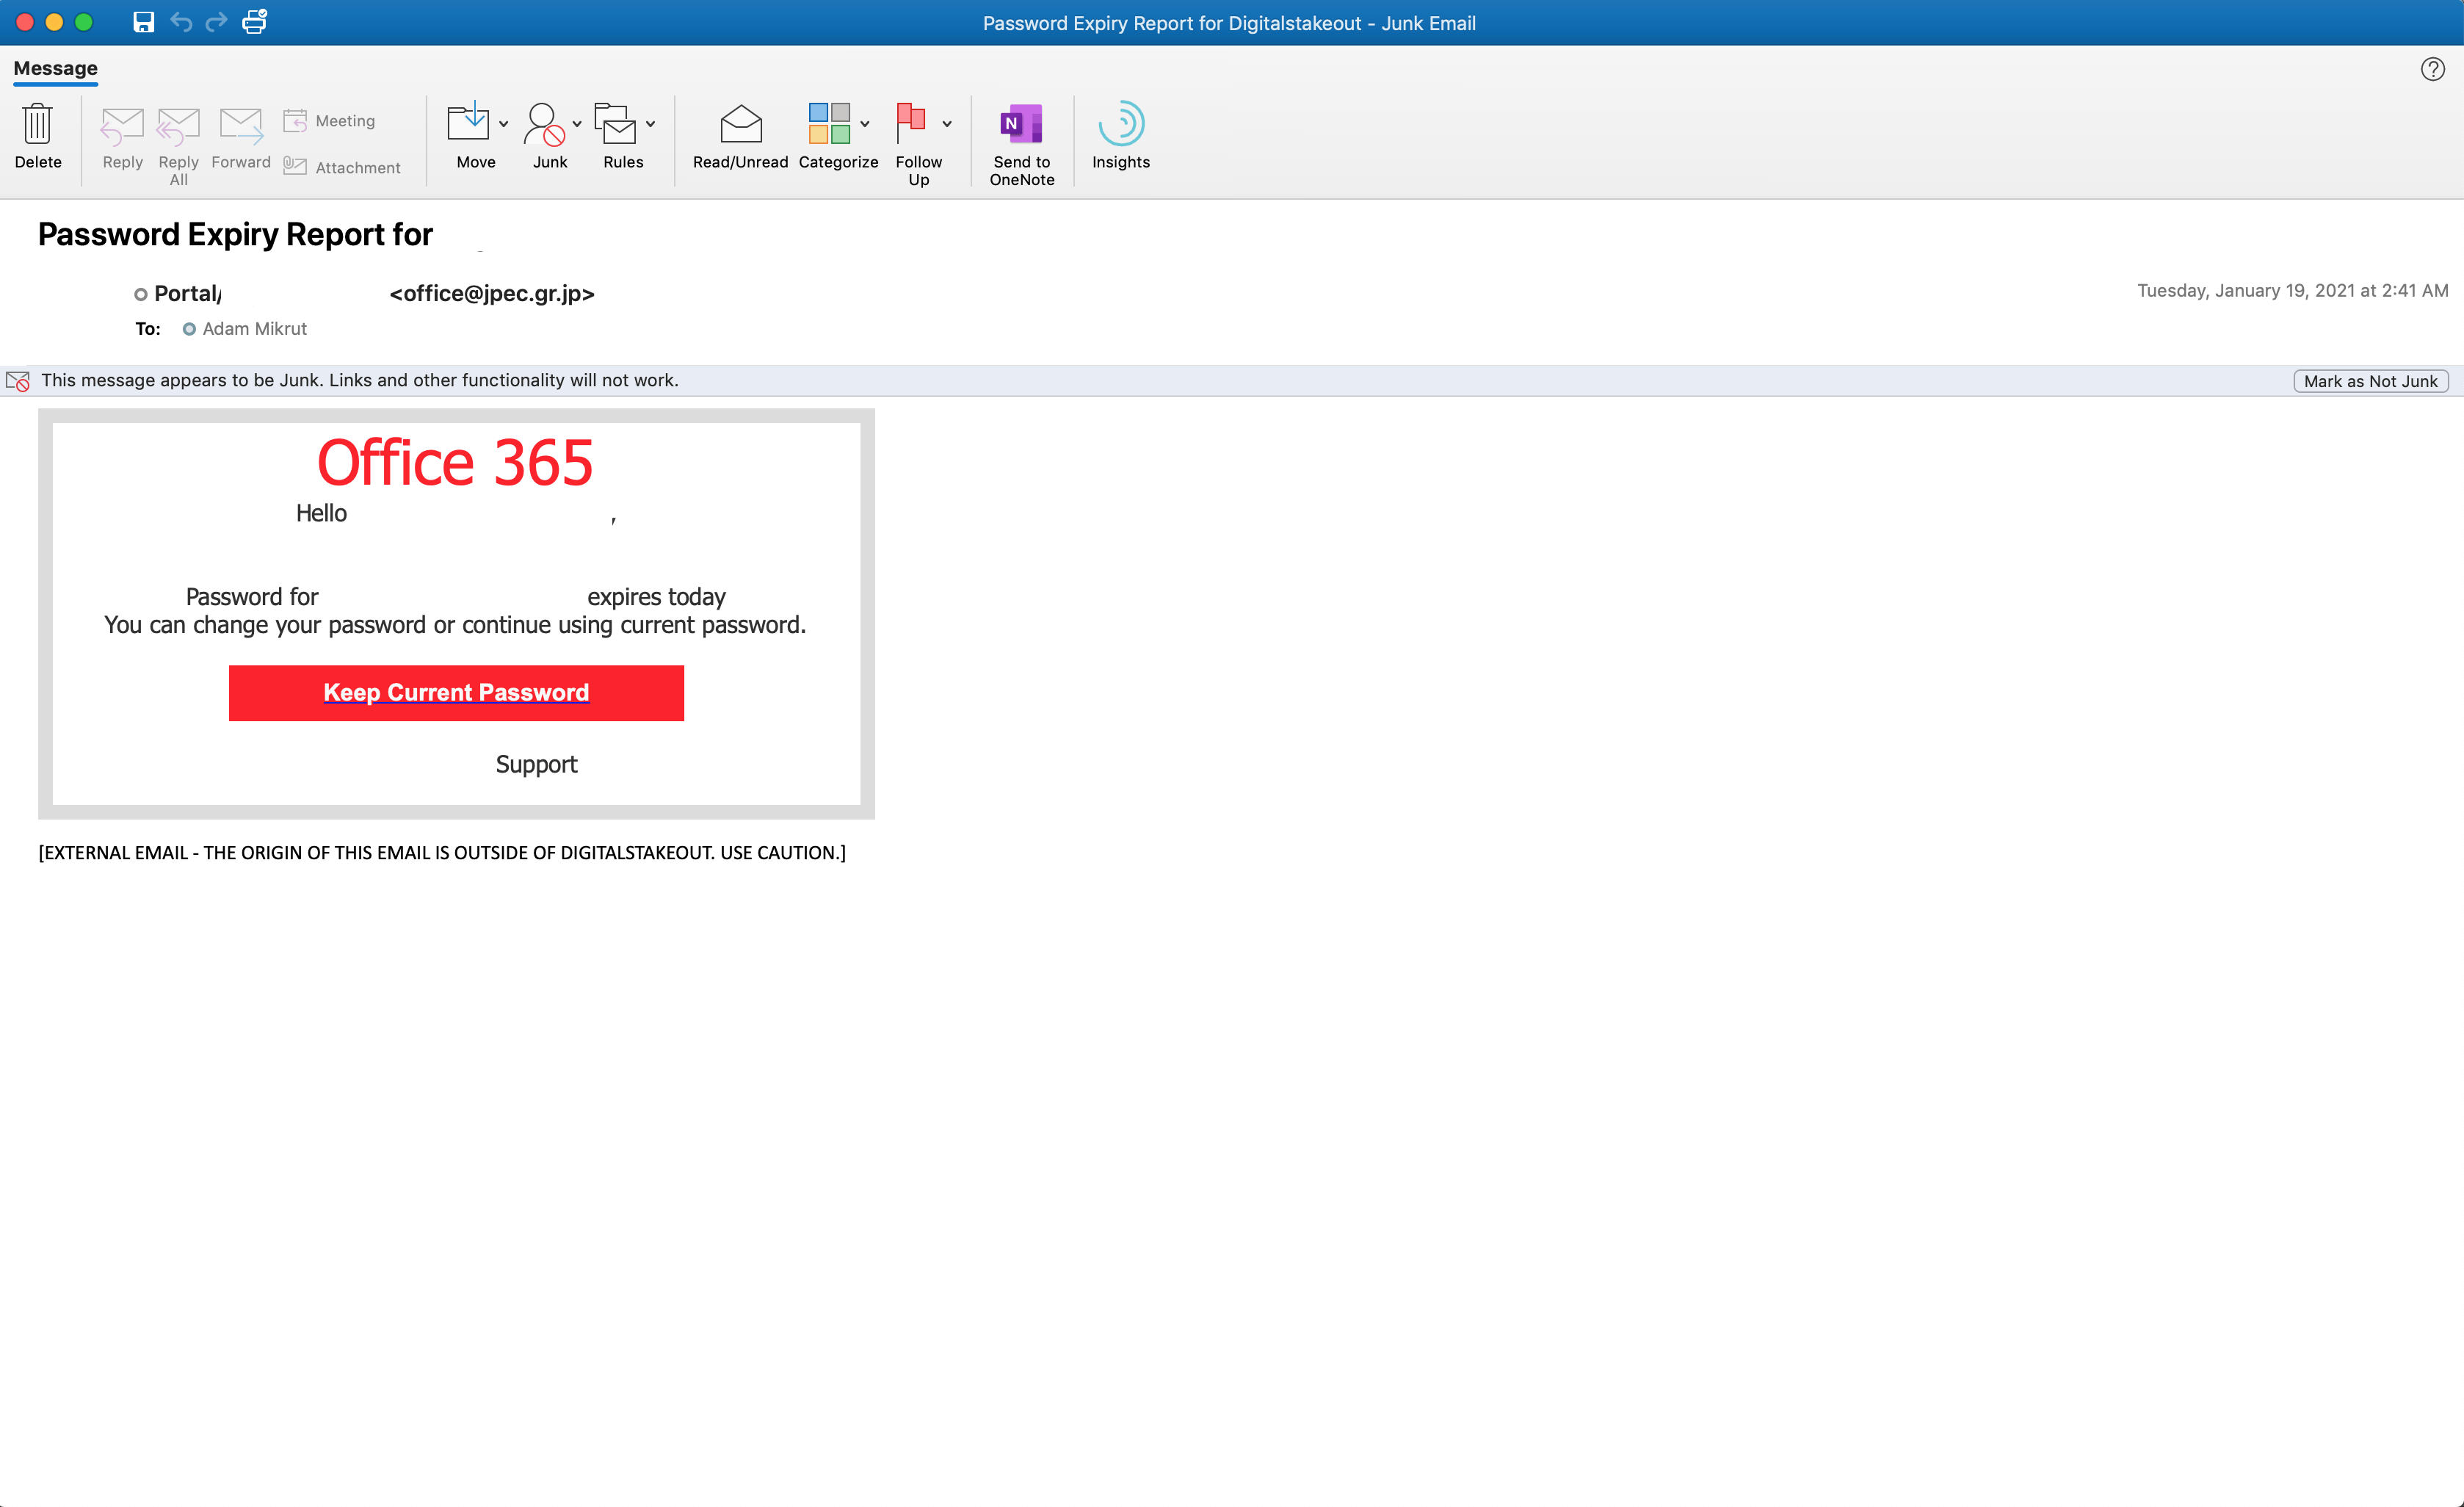 an example of an phishing attack